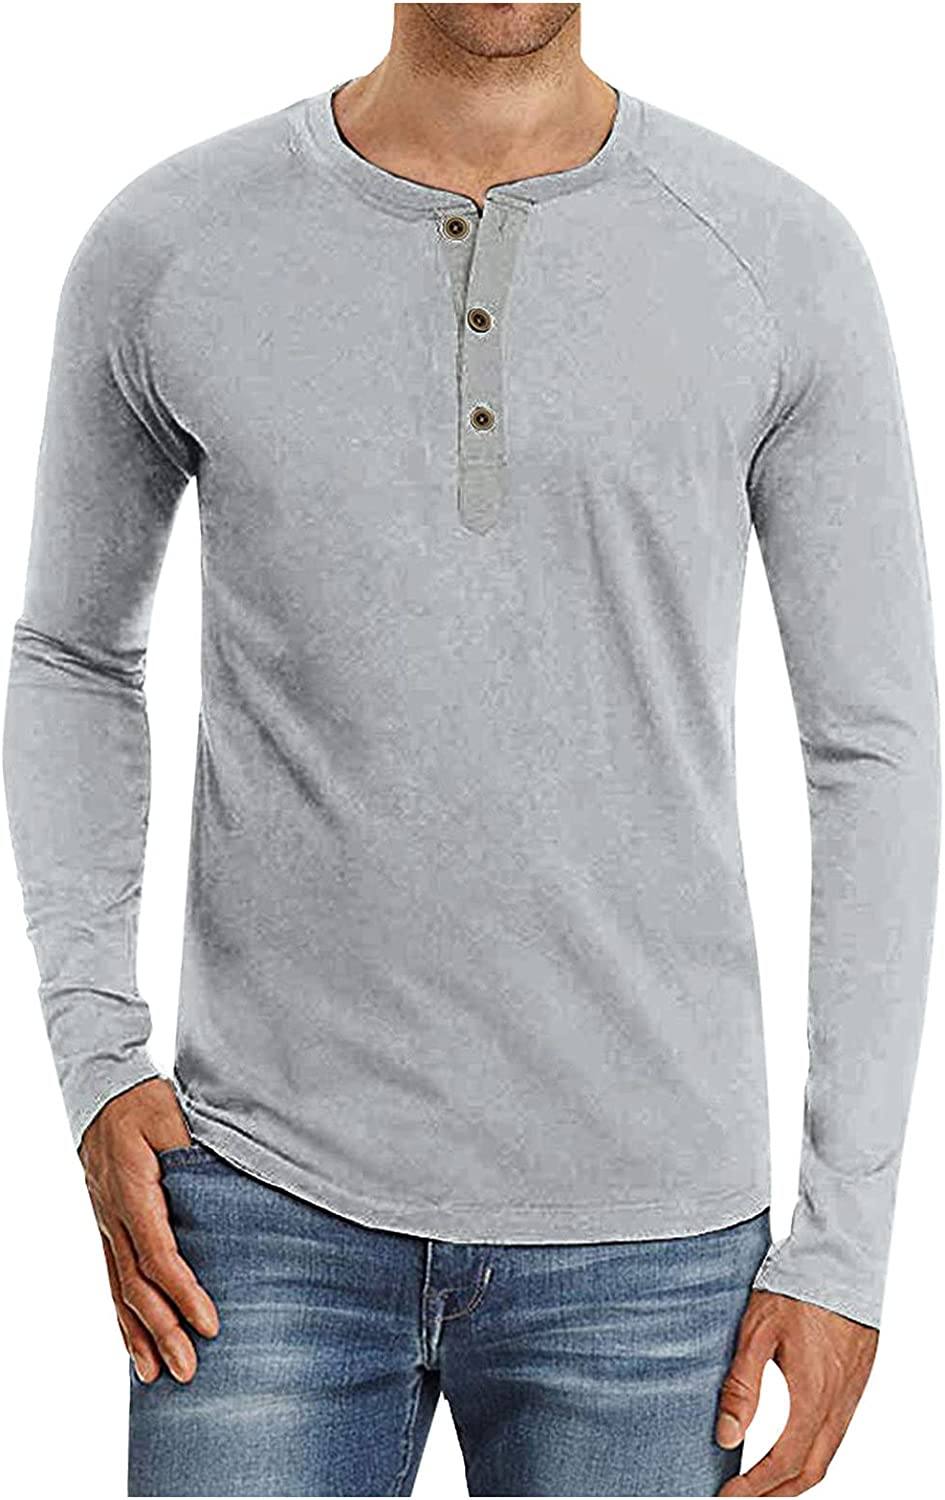 PAOGE Men's Casual Basic Solid Color Button Long Sleeve Jacket Top Blouse